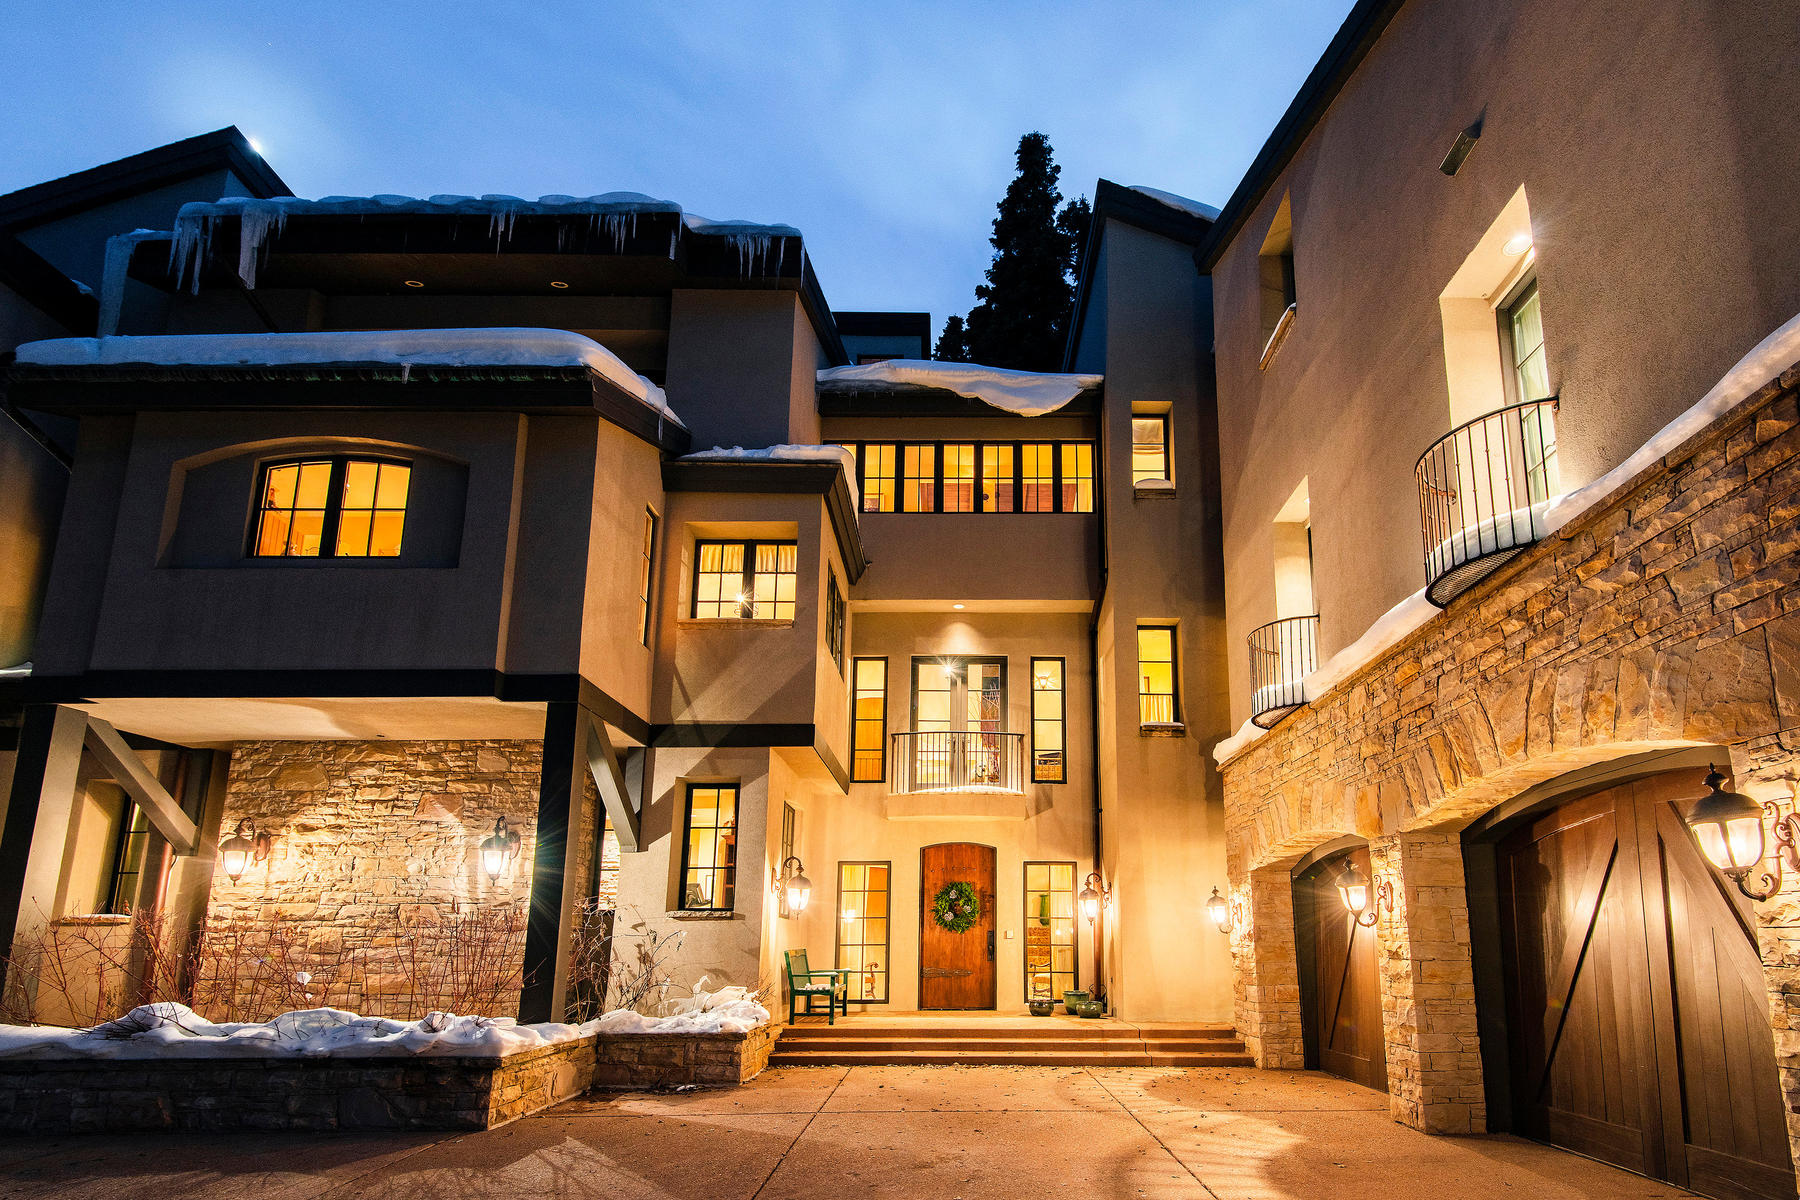 Single Family Homes for Sale at Ski Slope and Lake Views with Direct Deer Valley Ski Access 8030 Bald Eagle Dr Park City, Utah 84060 United States